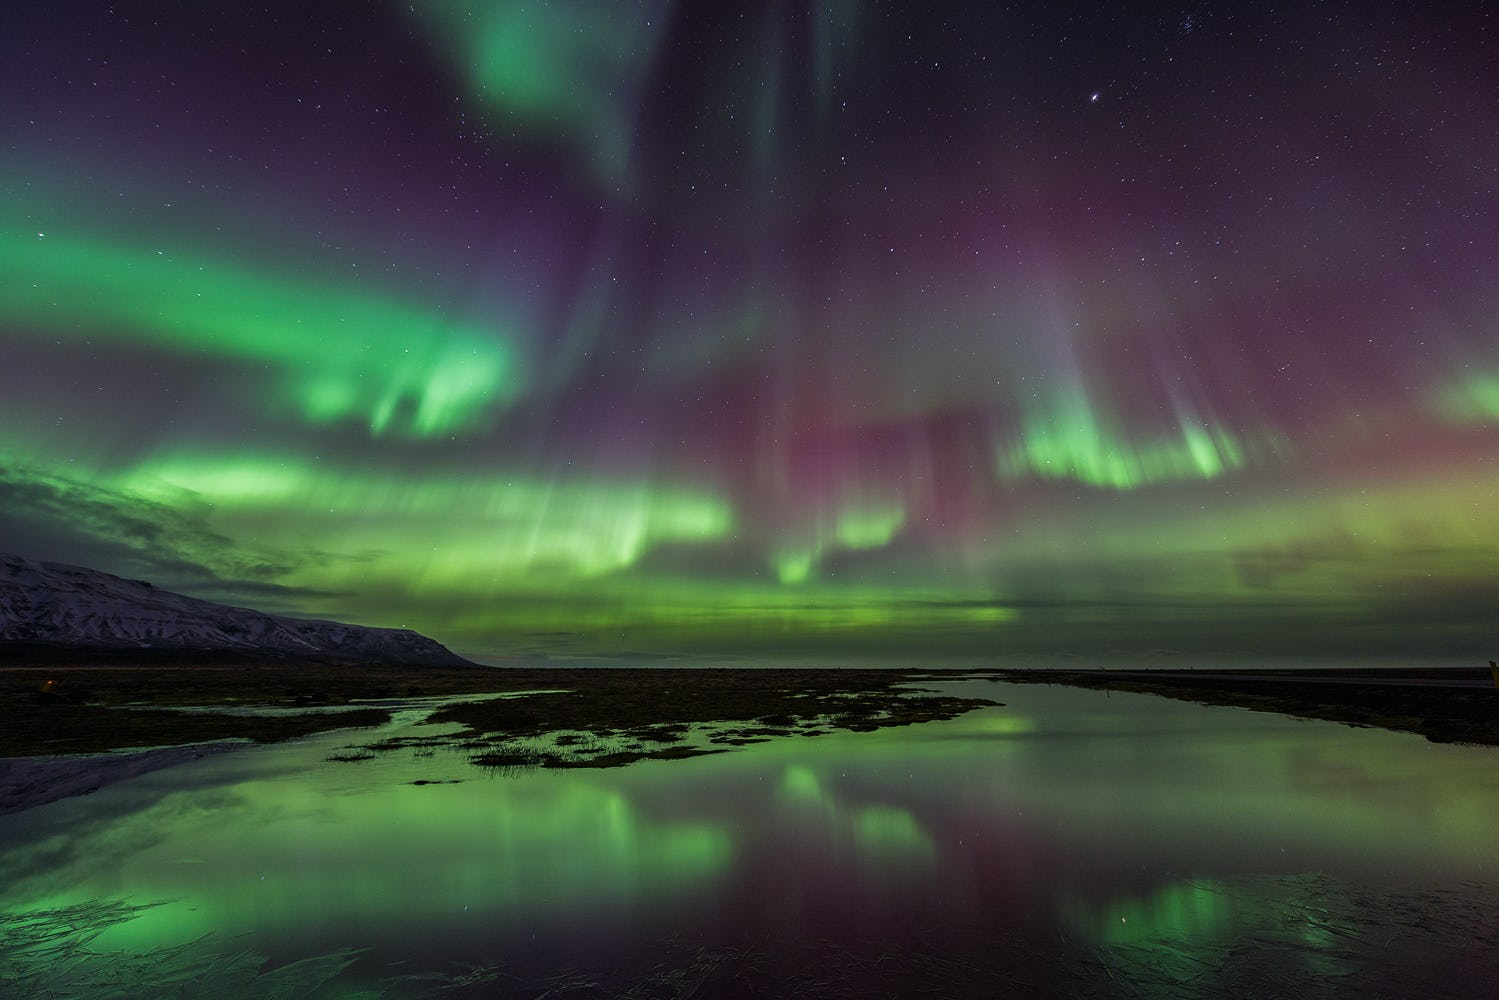 The aurora borealis, green and purple, dancing over the rocky coast of Iceland in winter.